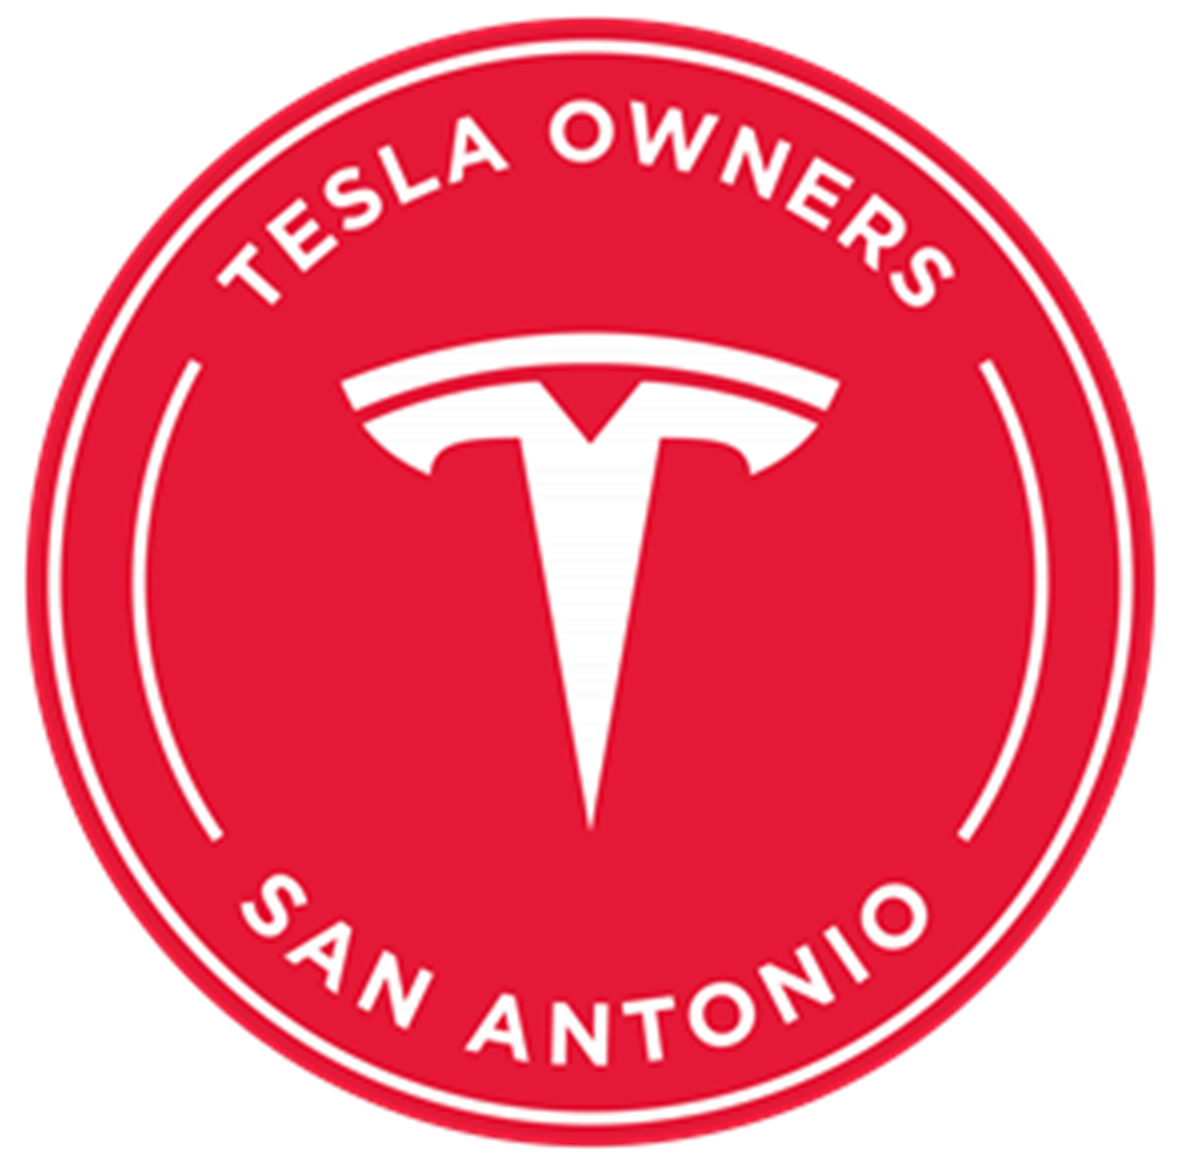 Tesla Owners Club of San Antonio